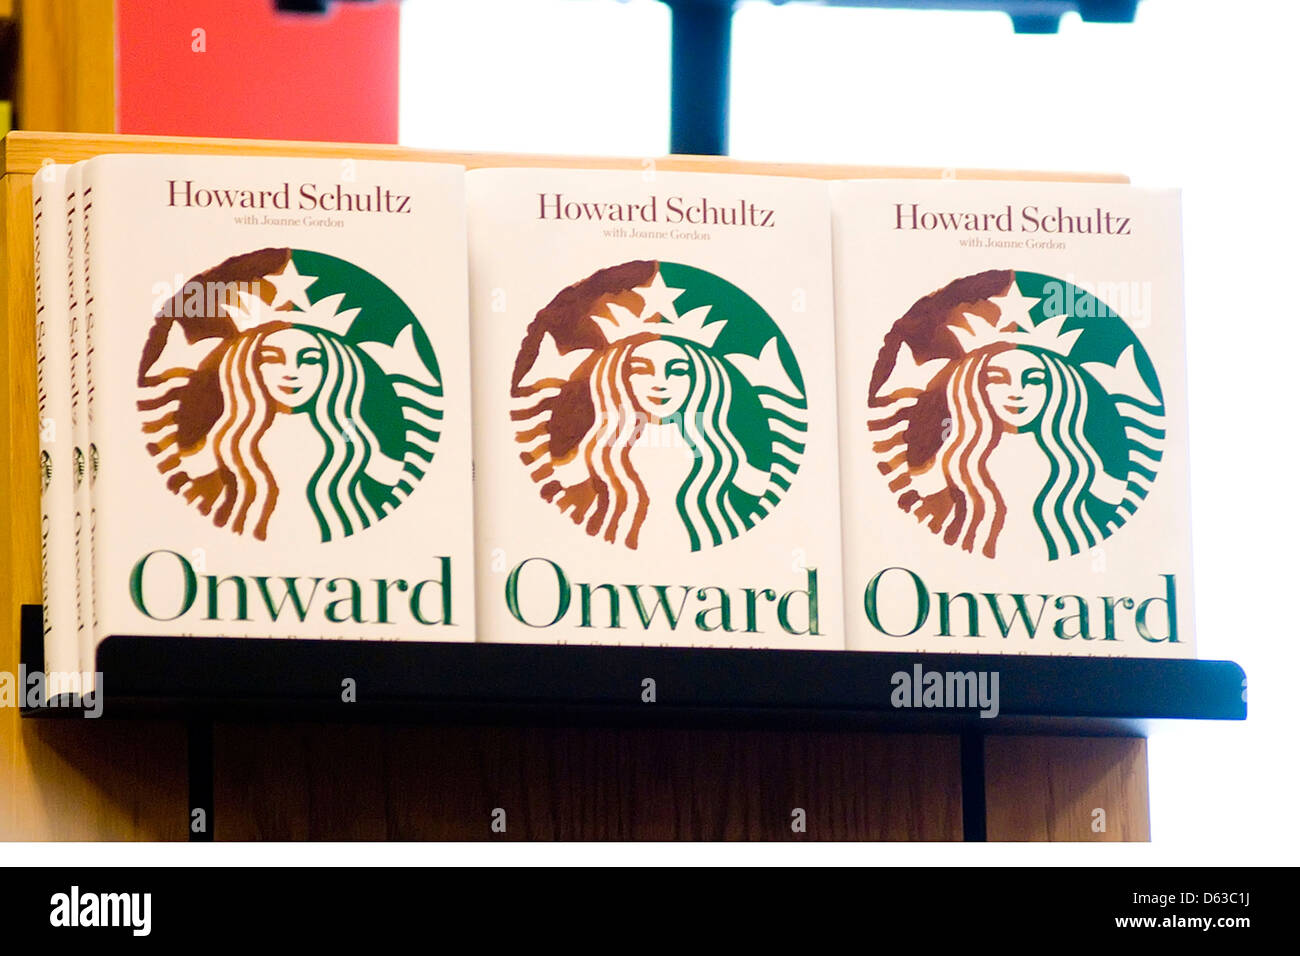 Atmosphere Howard Schultz, CEO of Starbucks, book 'Onward: How Starbucks  Fought for Its Life without Losing Its Soul' Chicago,